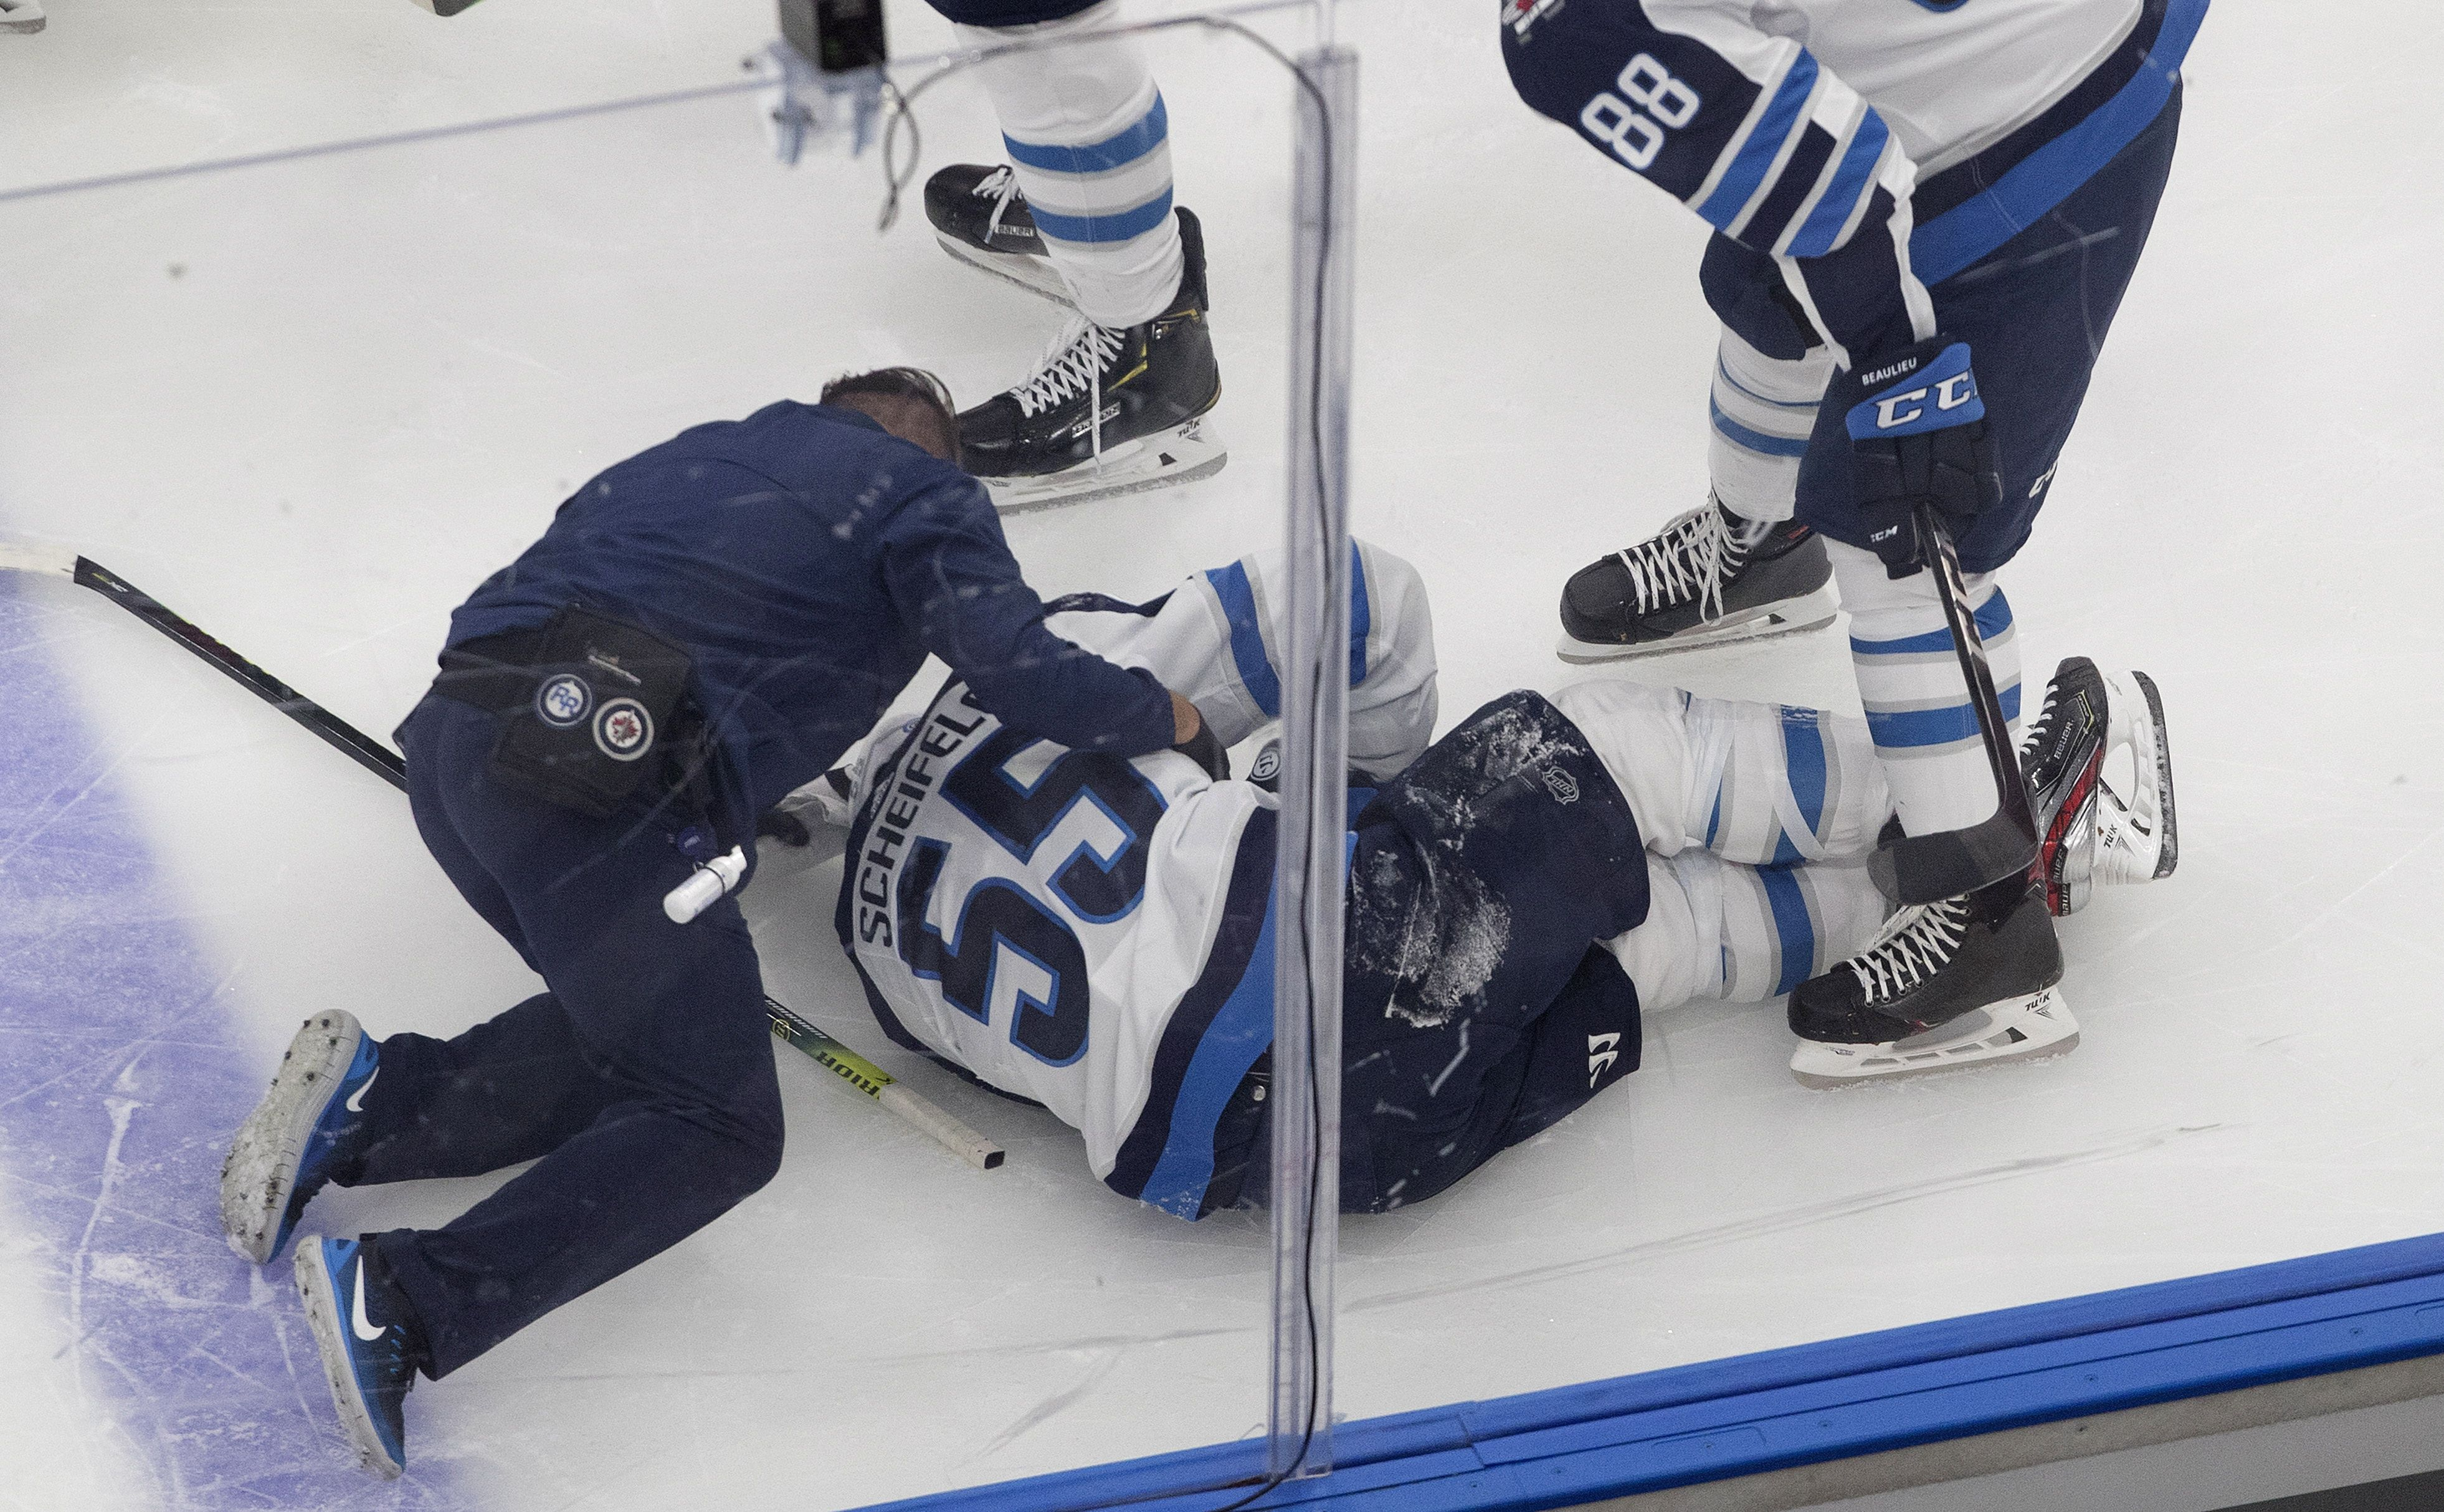 Jets Suffer Costly Losses In Dropping Game 1 To Flames The Boston Globe